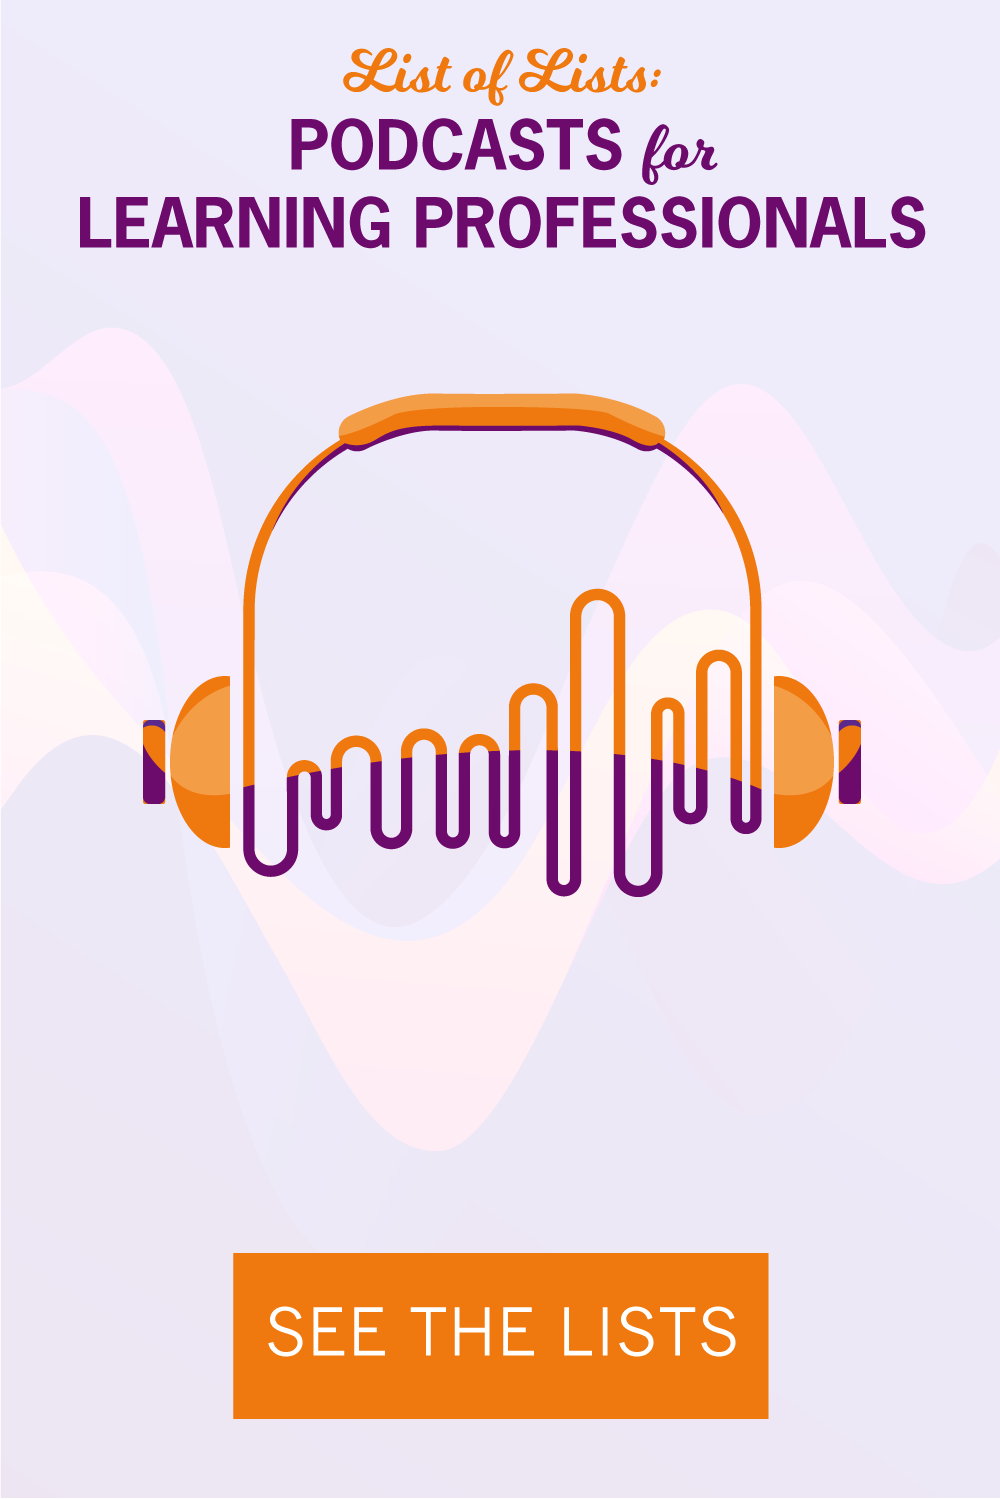 List of Lists: Podcasts for Learning Professionals